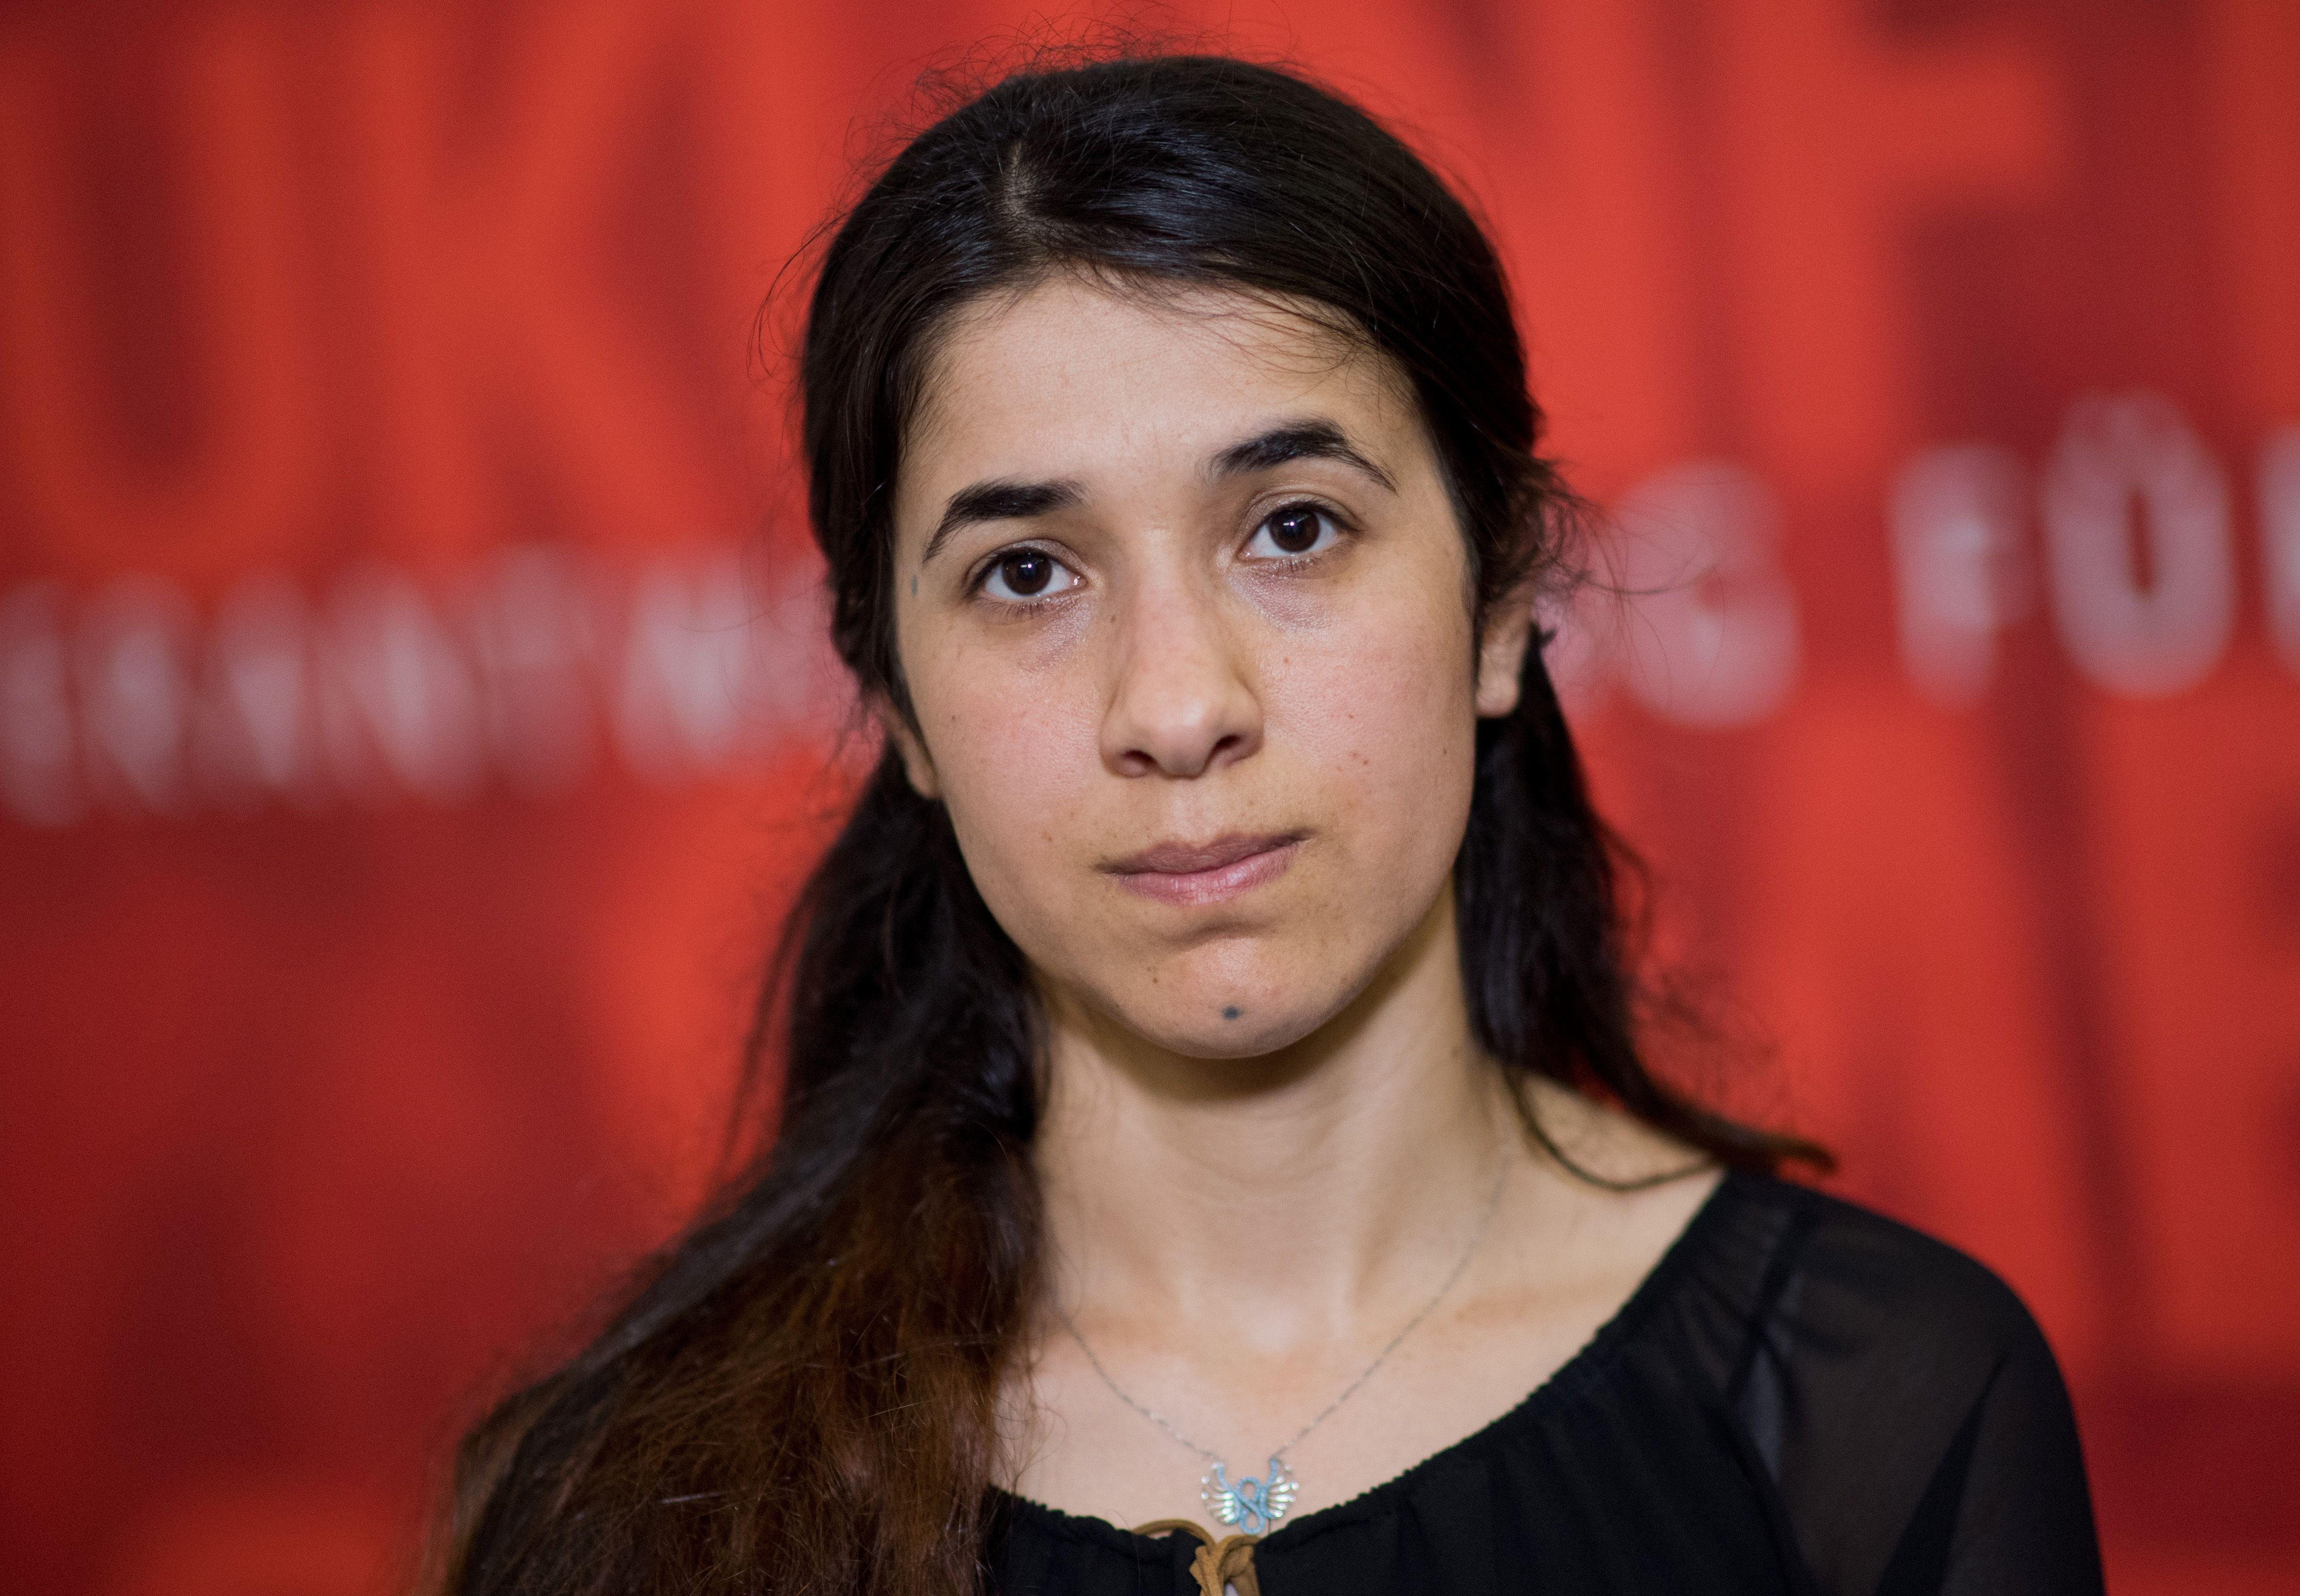 Nadia Murad participates in the Lower Saxony Landtag in Hanover, northern Germany on May 31, 2016